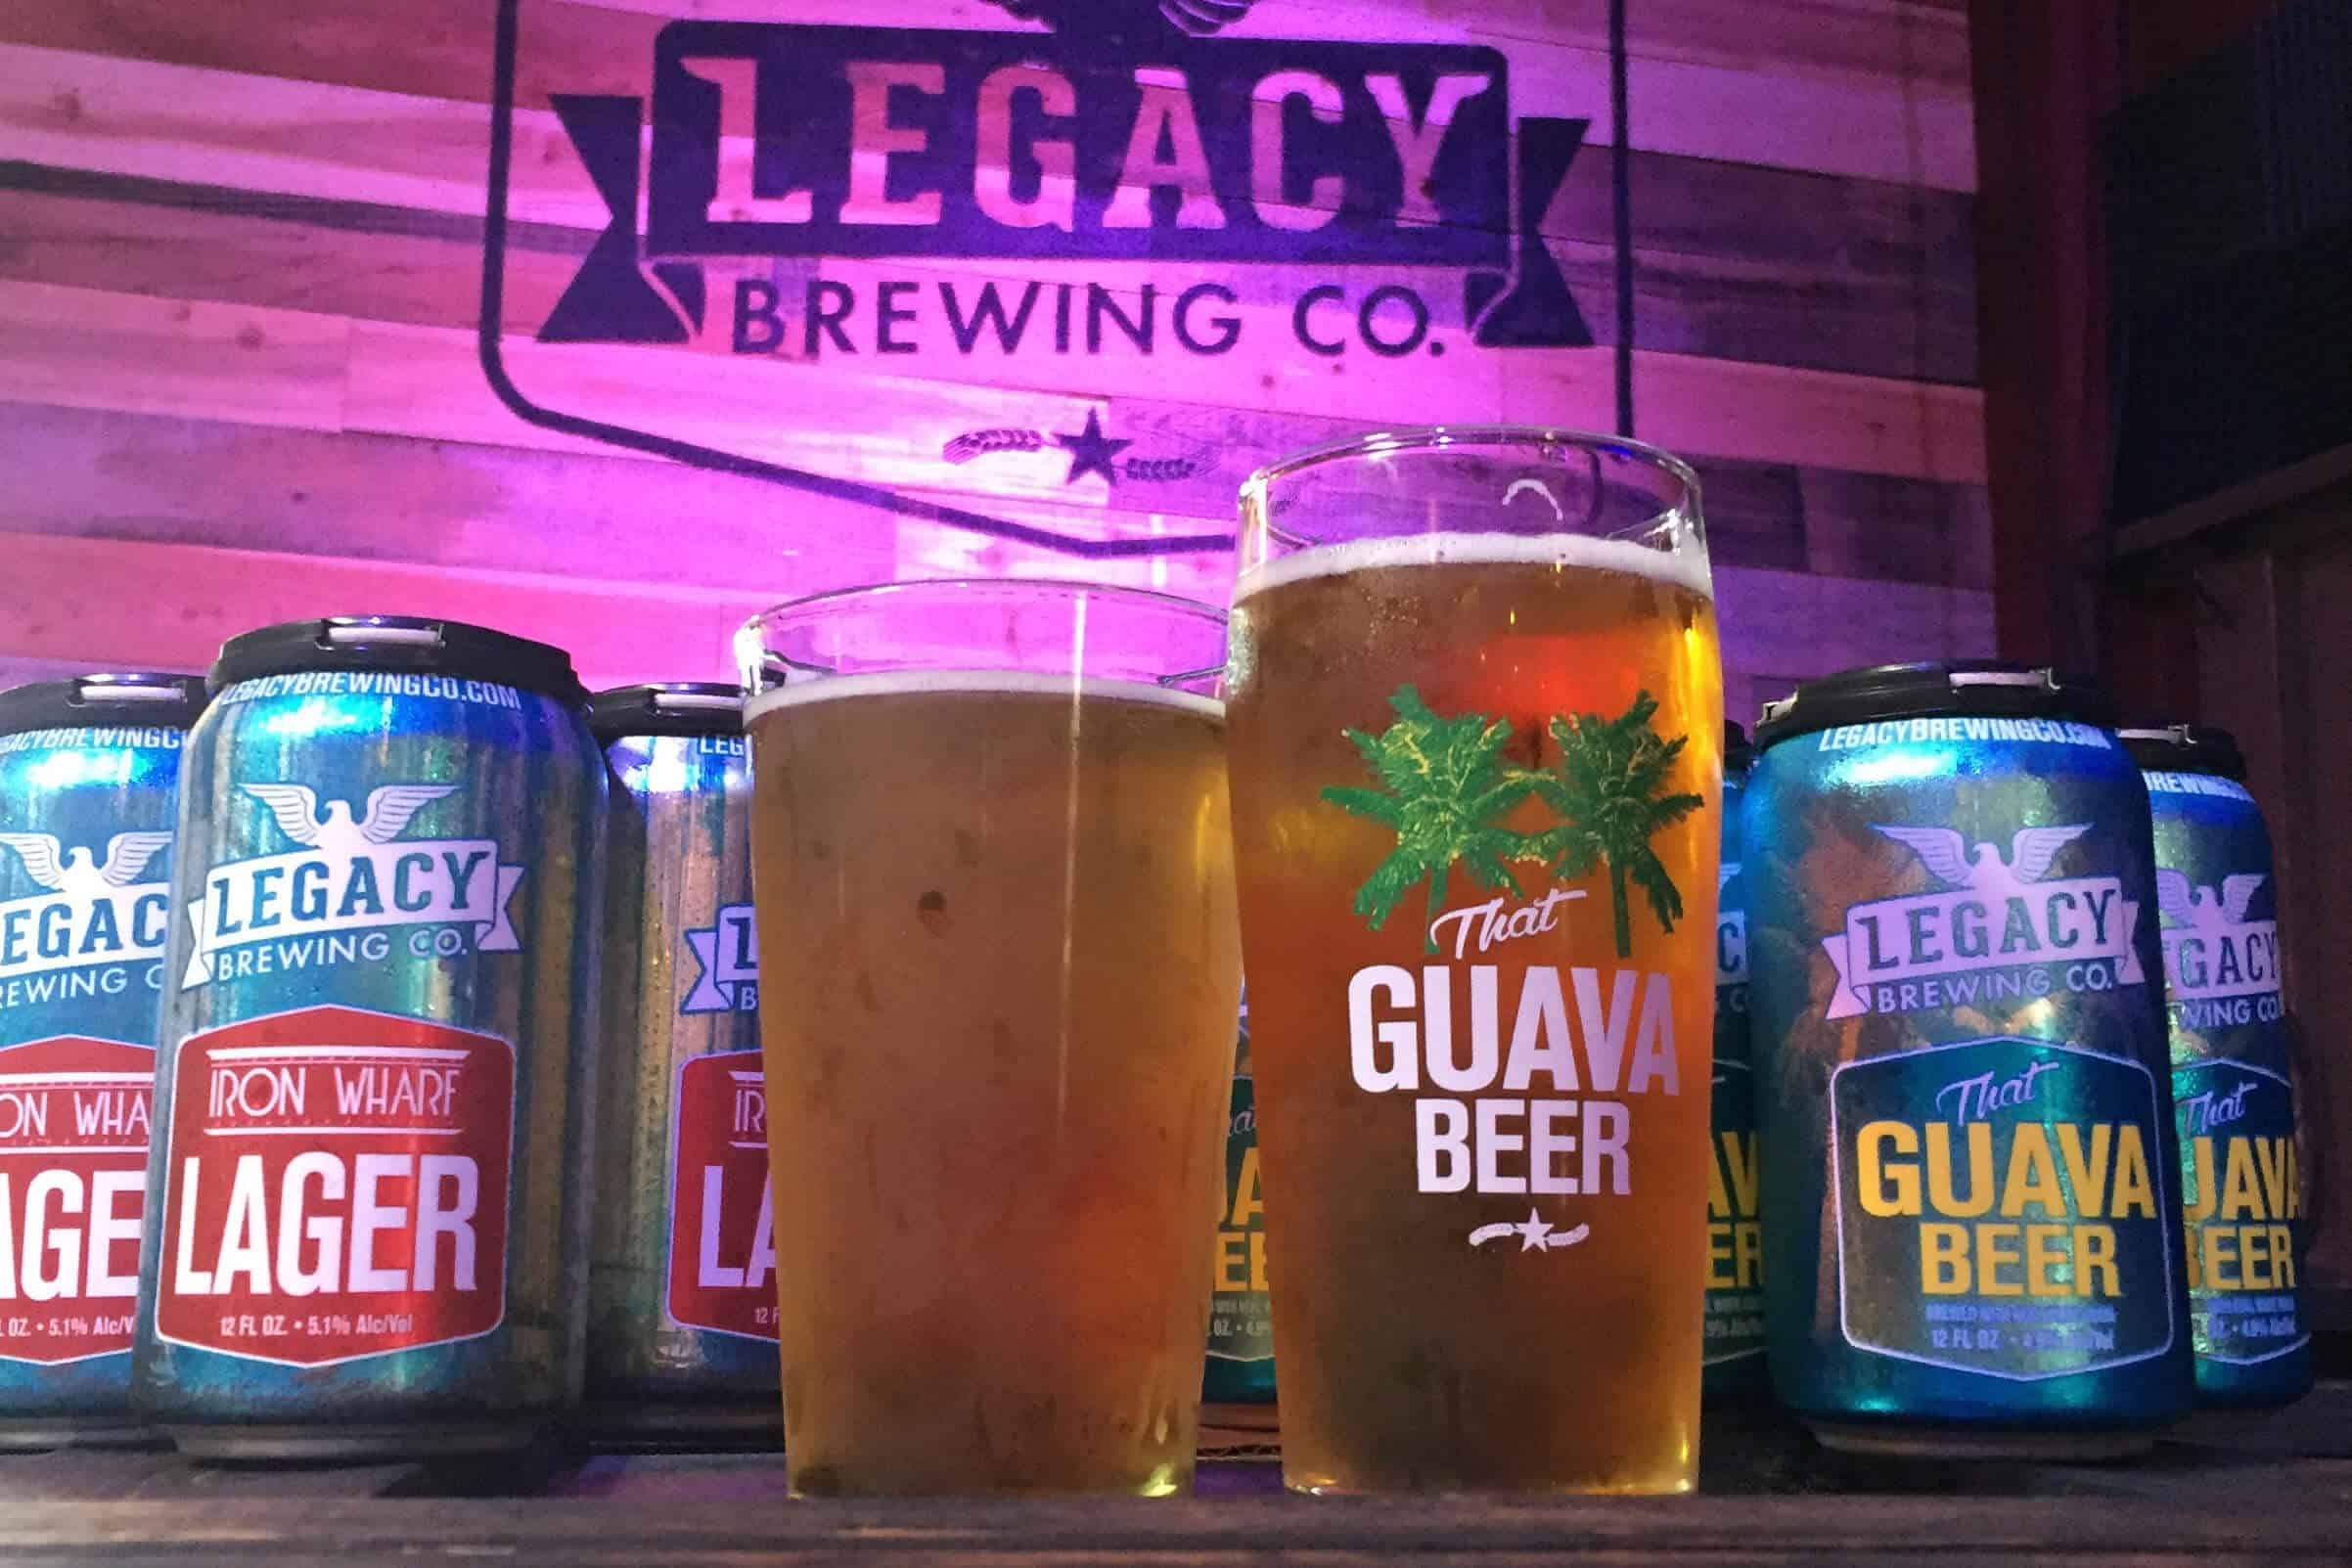 That Guava Beer Legacy Brewing